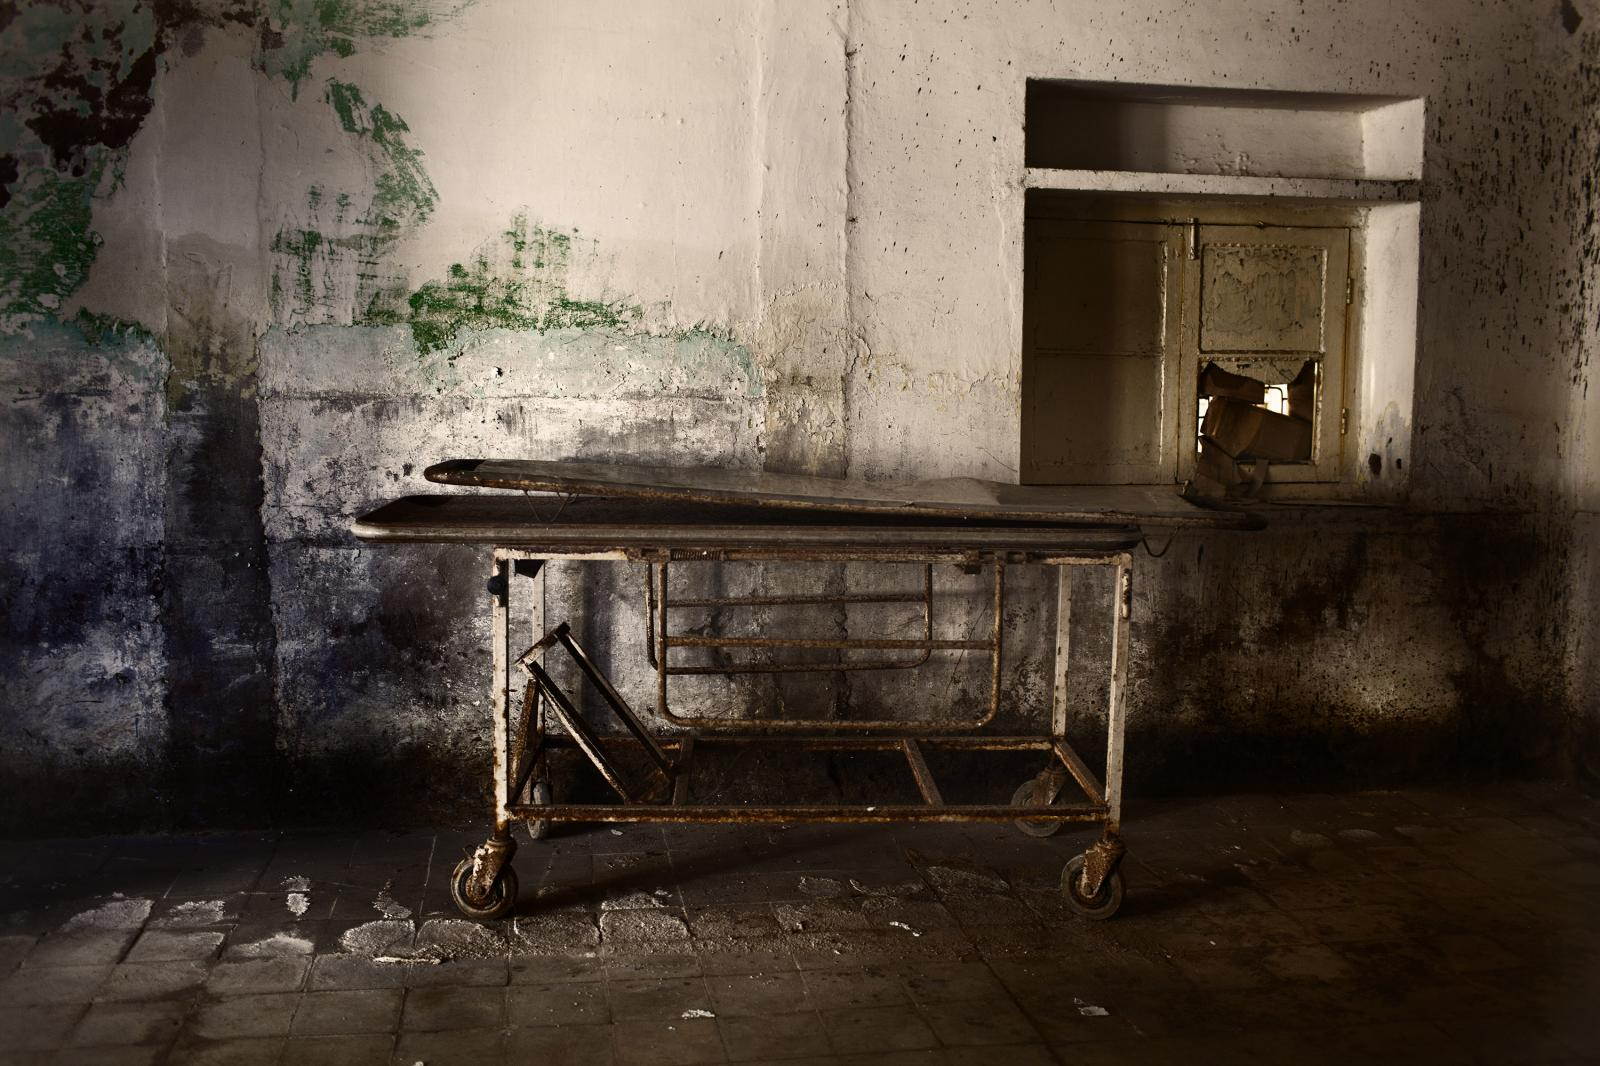 A rusty stretcher is seen inside an abandoned hospital due to the heavy floods in the province of Hyderabad. Hundreds of health facilities and hospitals have been damaged and destroyed during the floods, greatly reducing the healthcare available for survivors. Diego Ibarra Sánchez for WHO